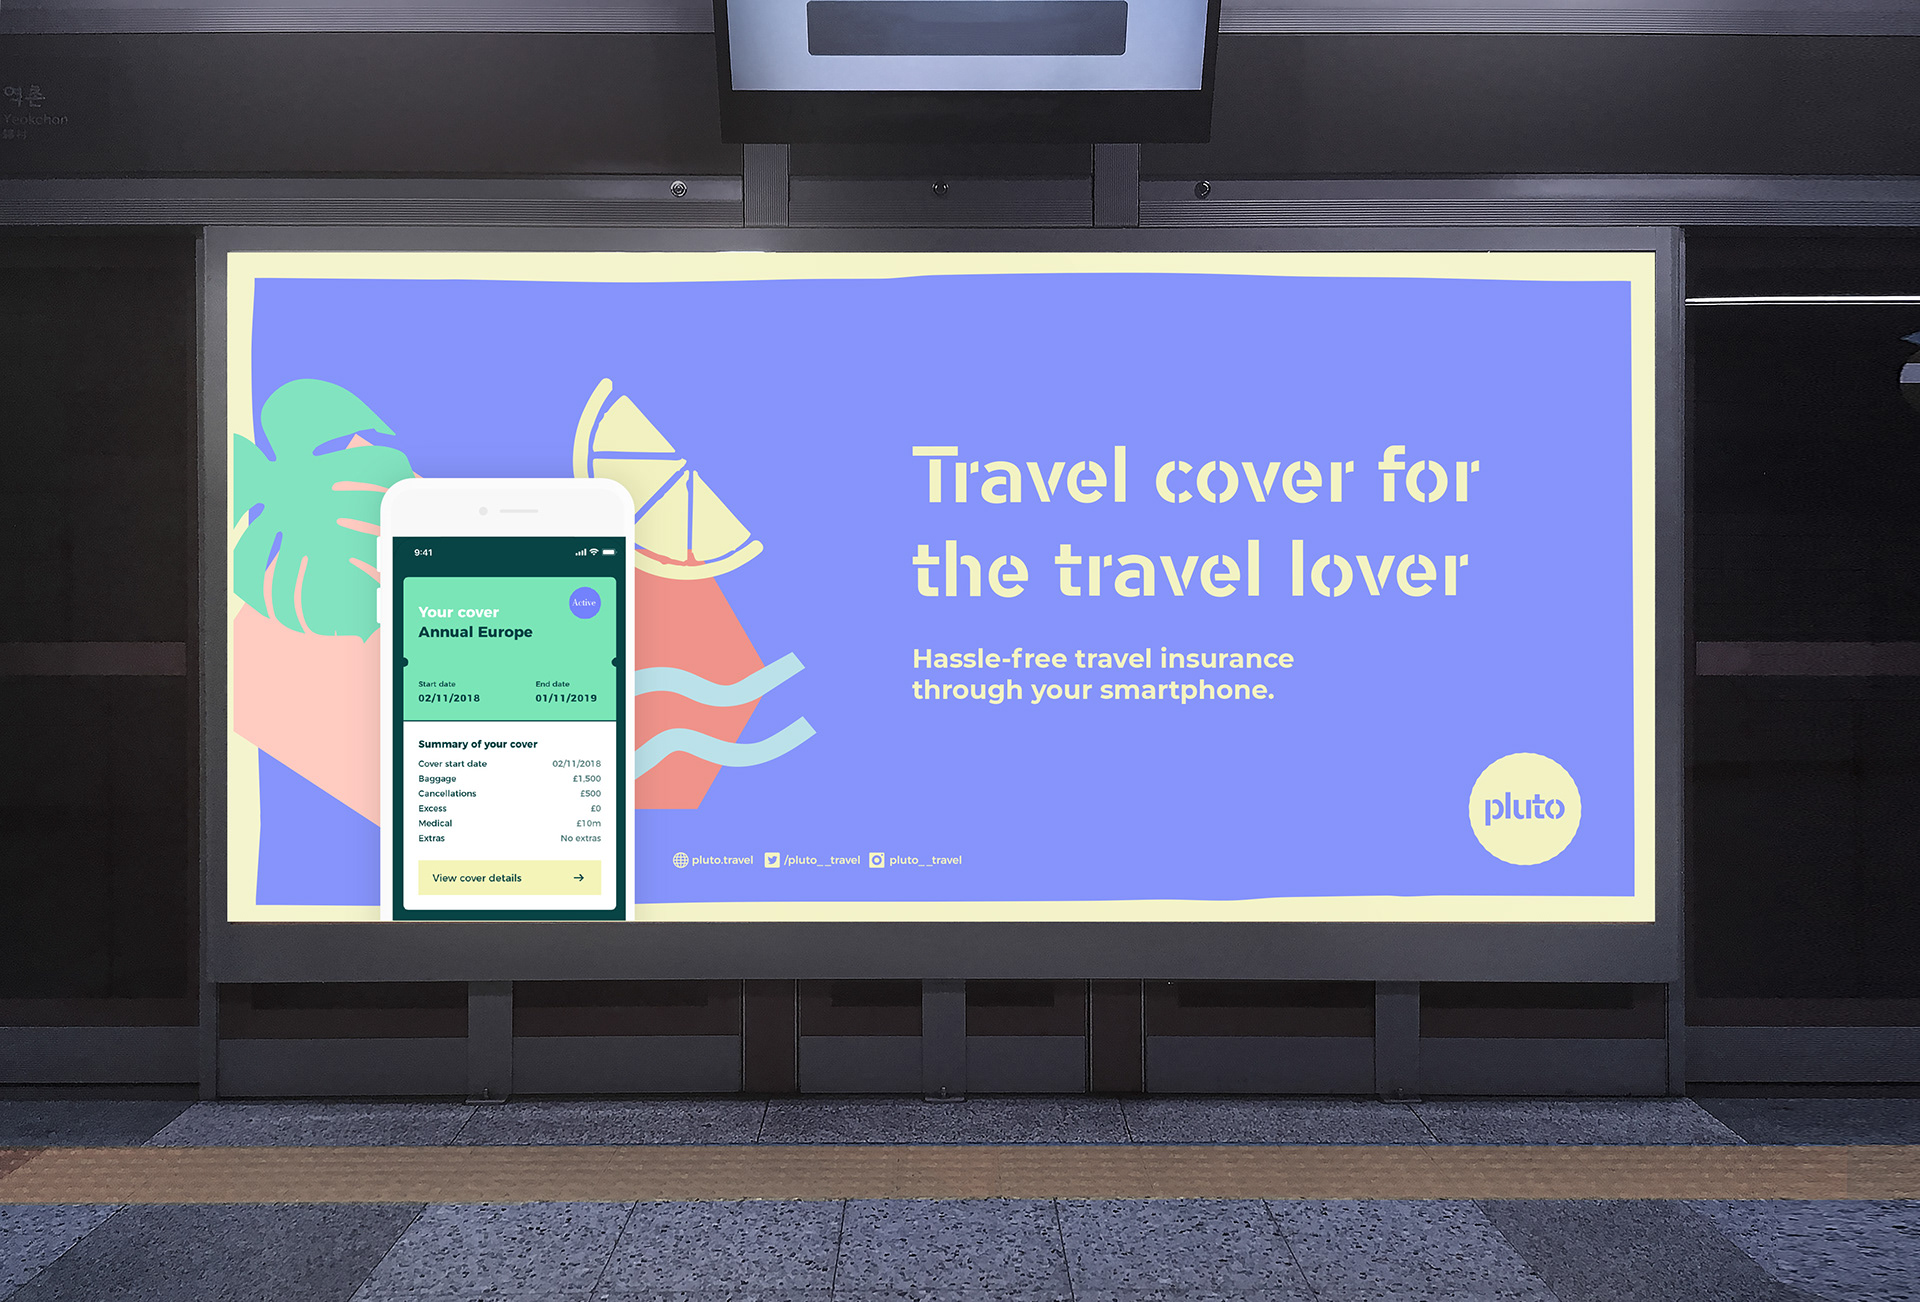 Brand, Advertising and Digital Deliverables for Travel Cover for the Travel Lover